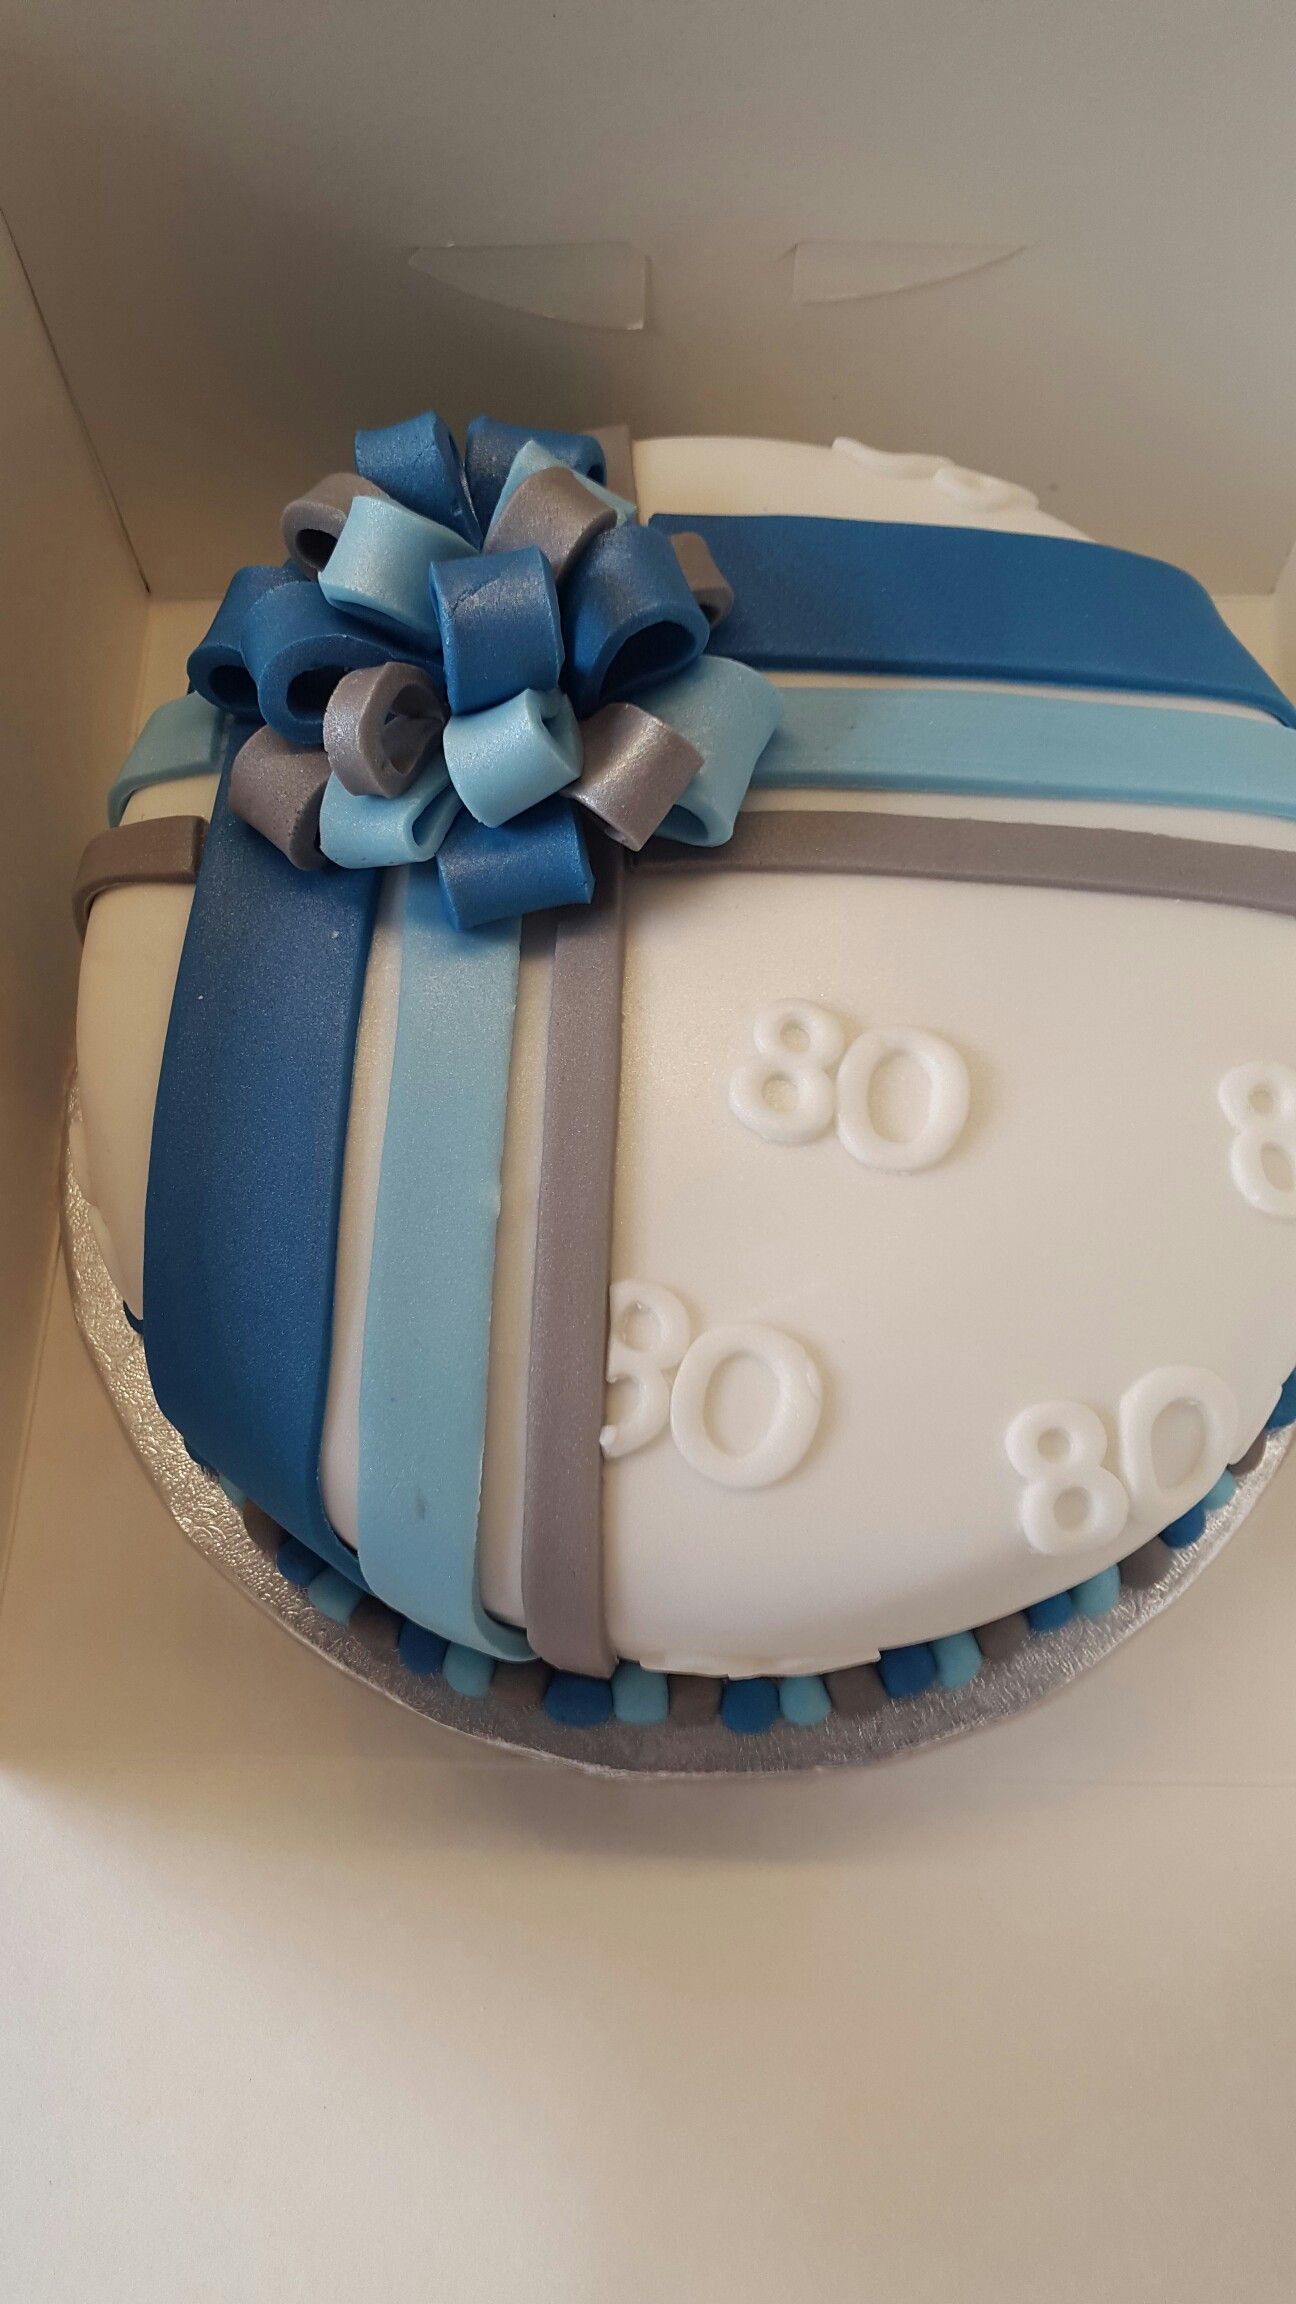 Best ideas about Birthday Cake Images For Man . Save or Pin Men s 80th birthday cake Party Ideas in 2019 Now.